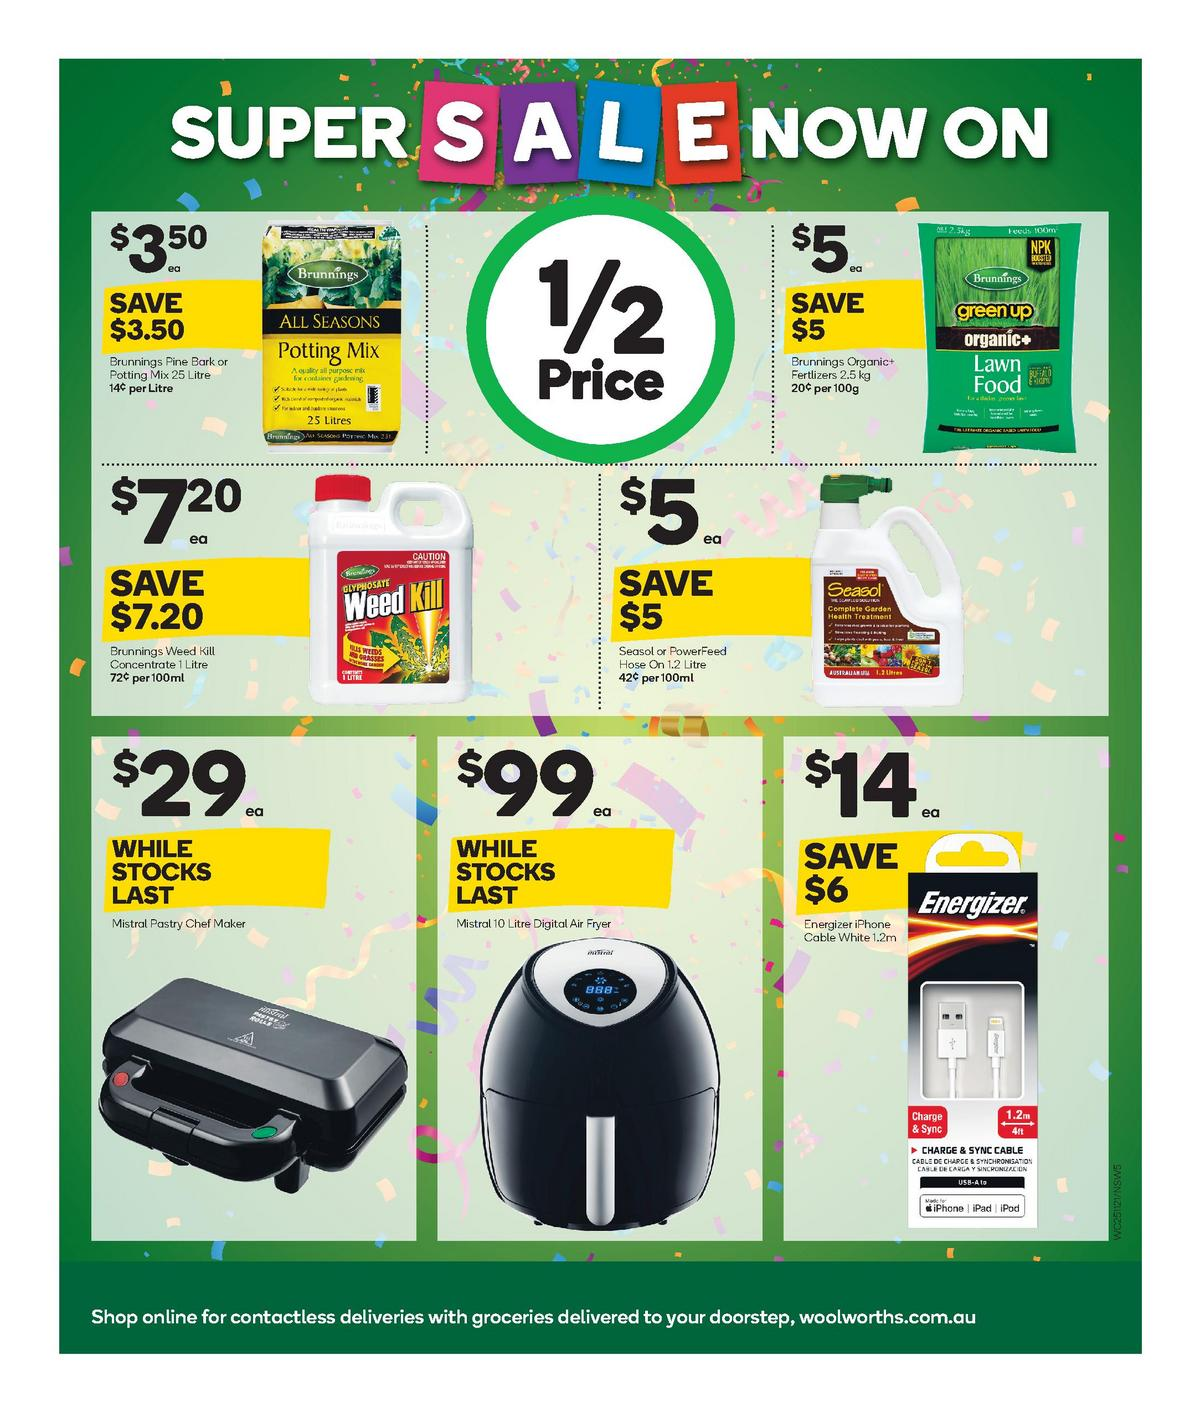 Woolworths Super Sale Catalogues from November 25